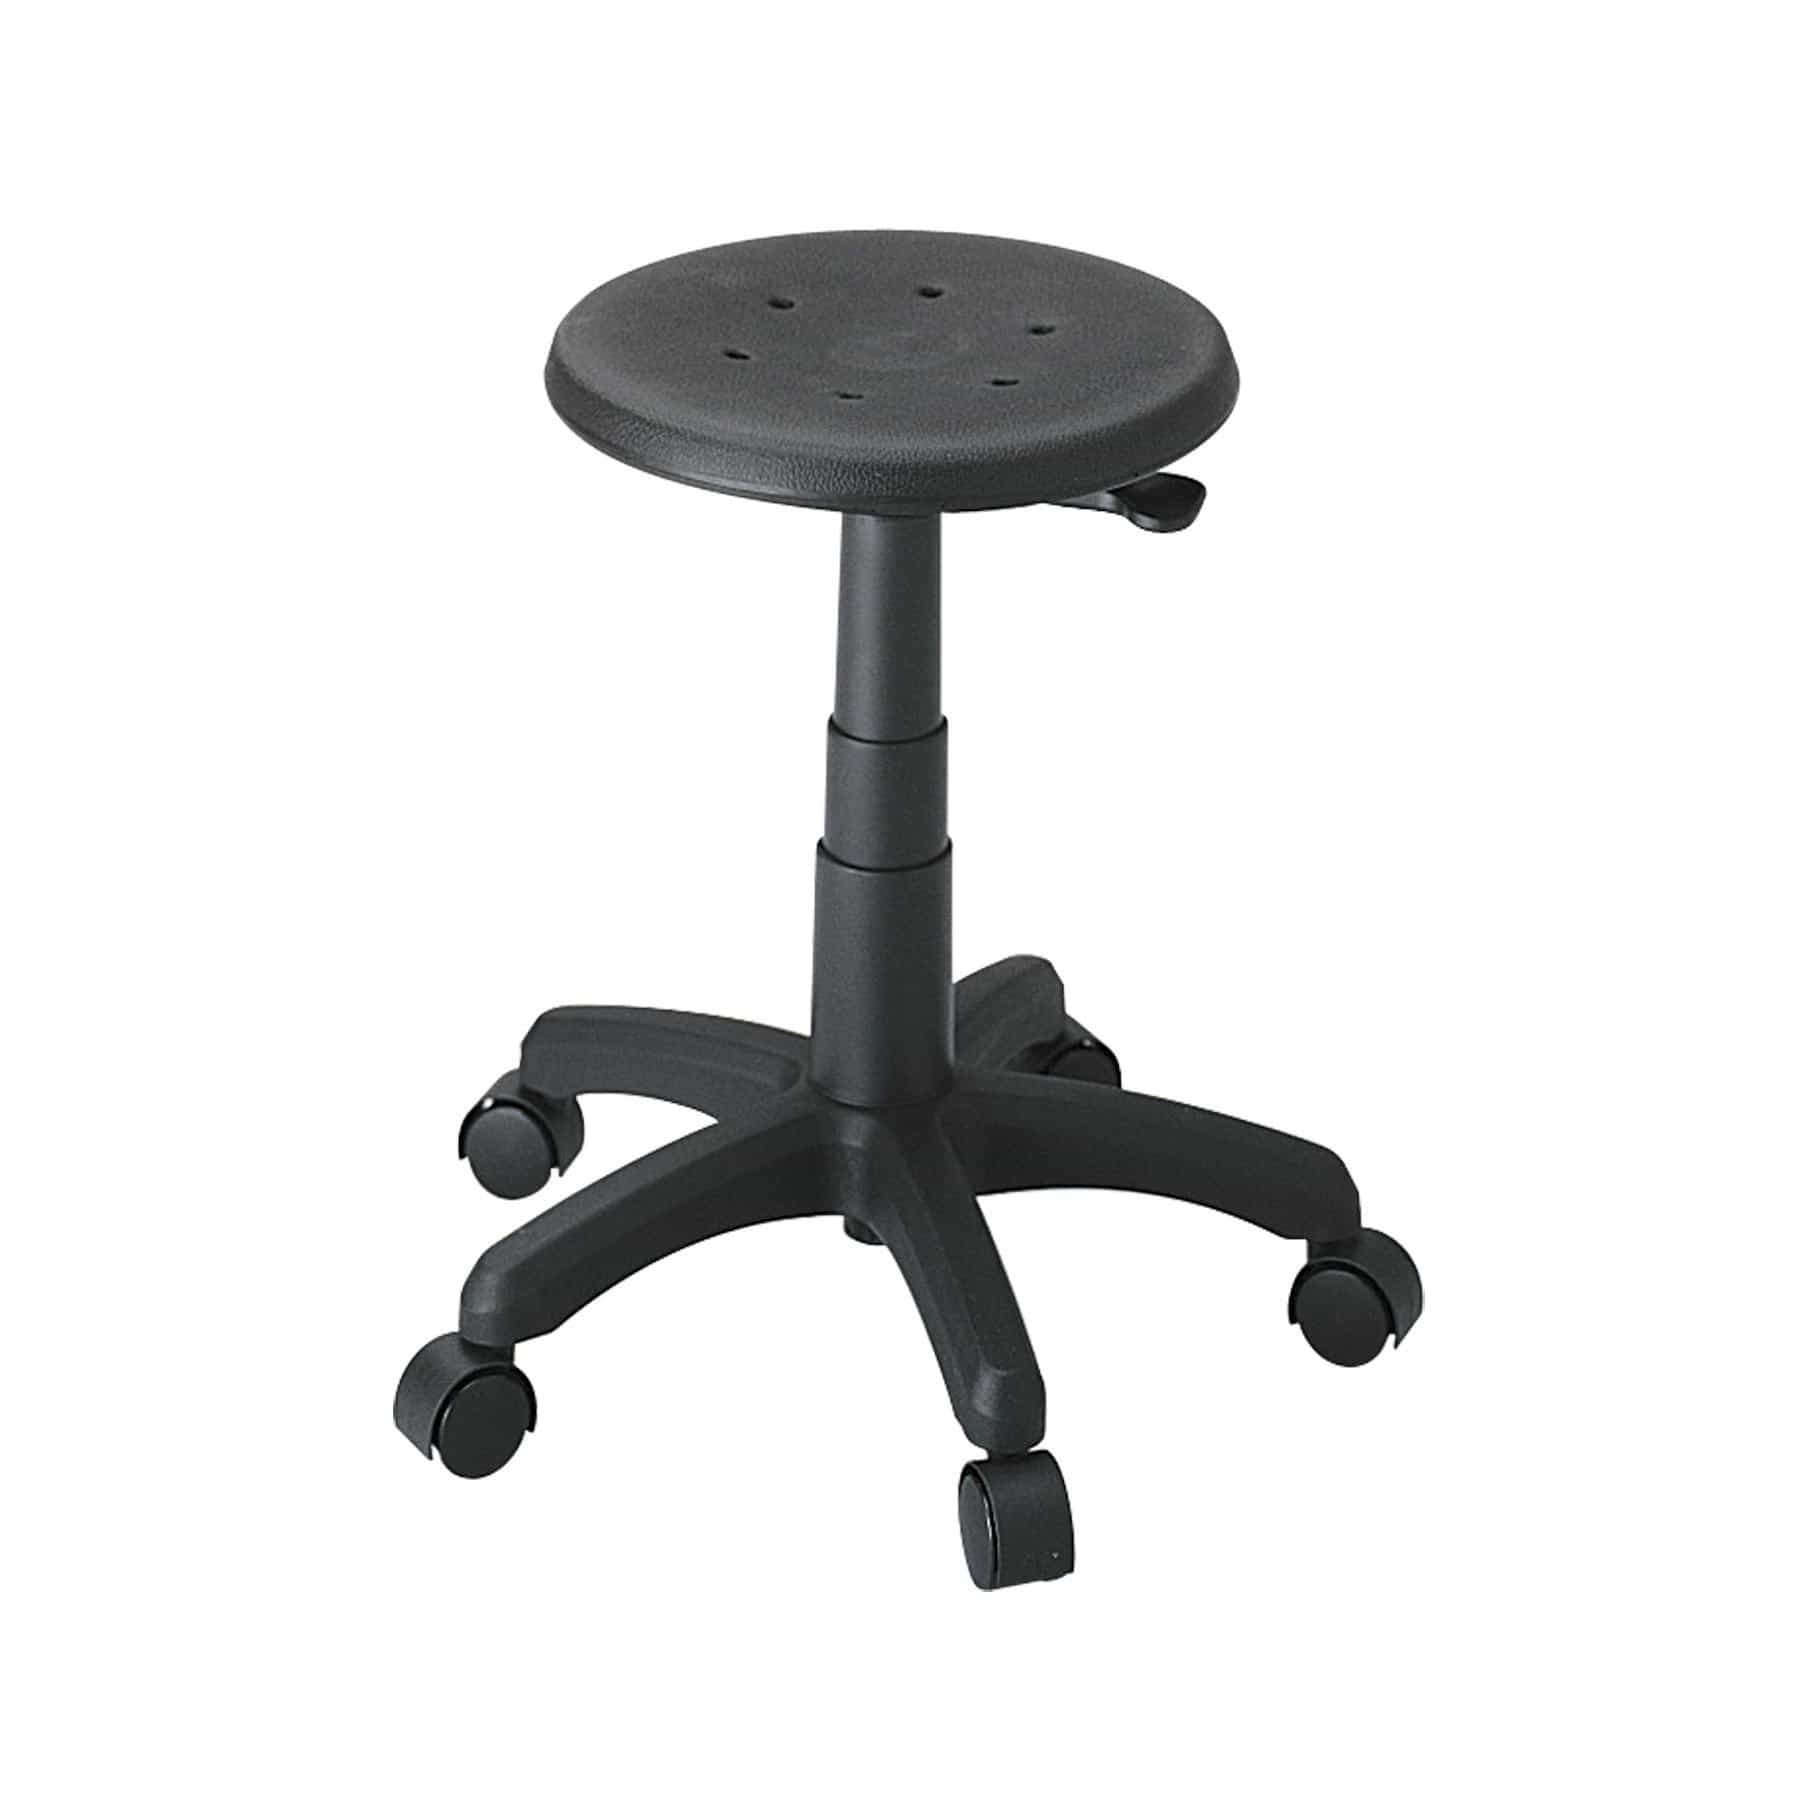 bedinhome - Industrial Seating 250 lbs Weight Capacity Black Polyurethane Office Stool - Safco - Office Stool